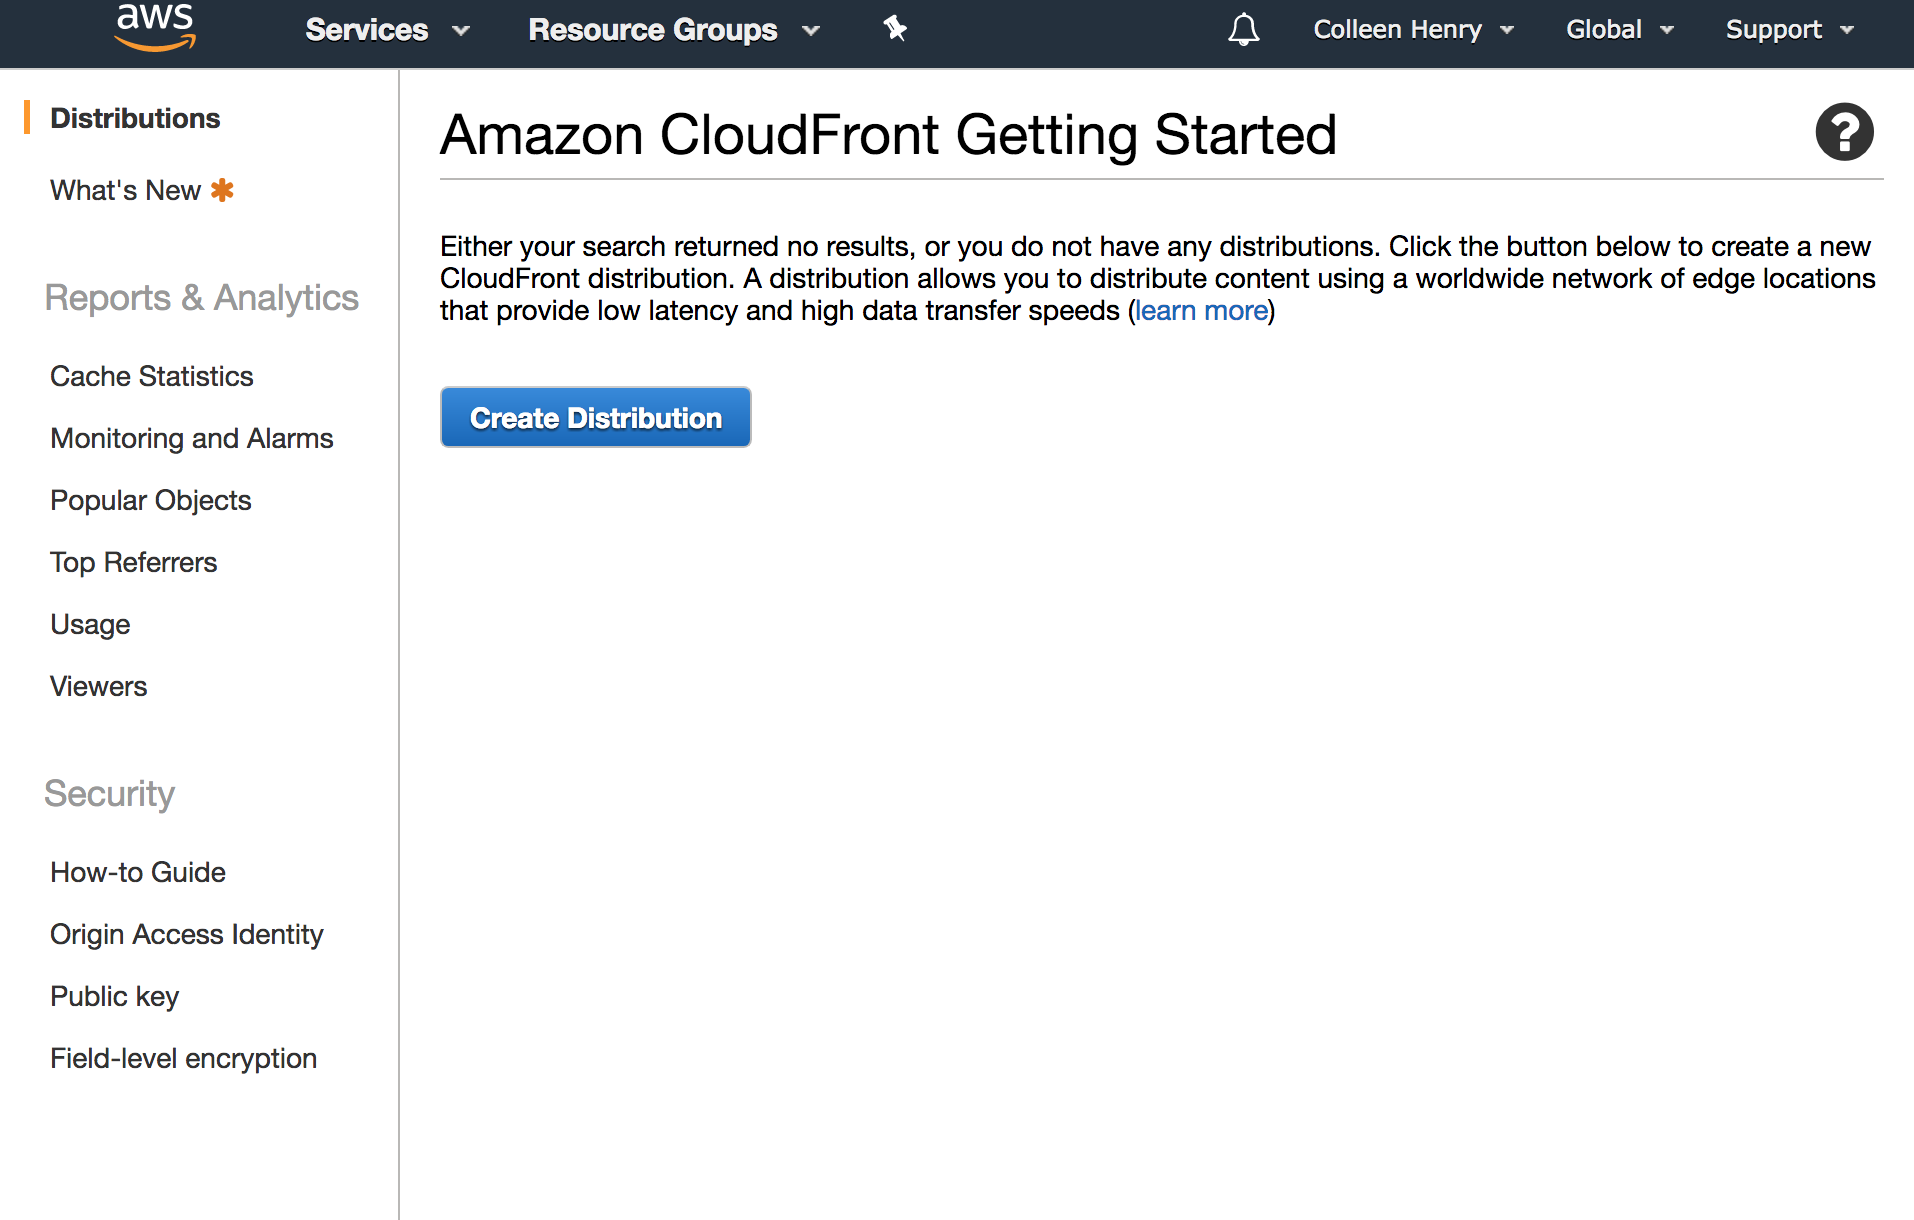 CloudFront Getting Started